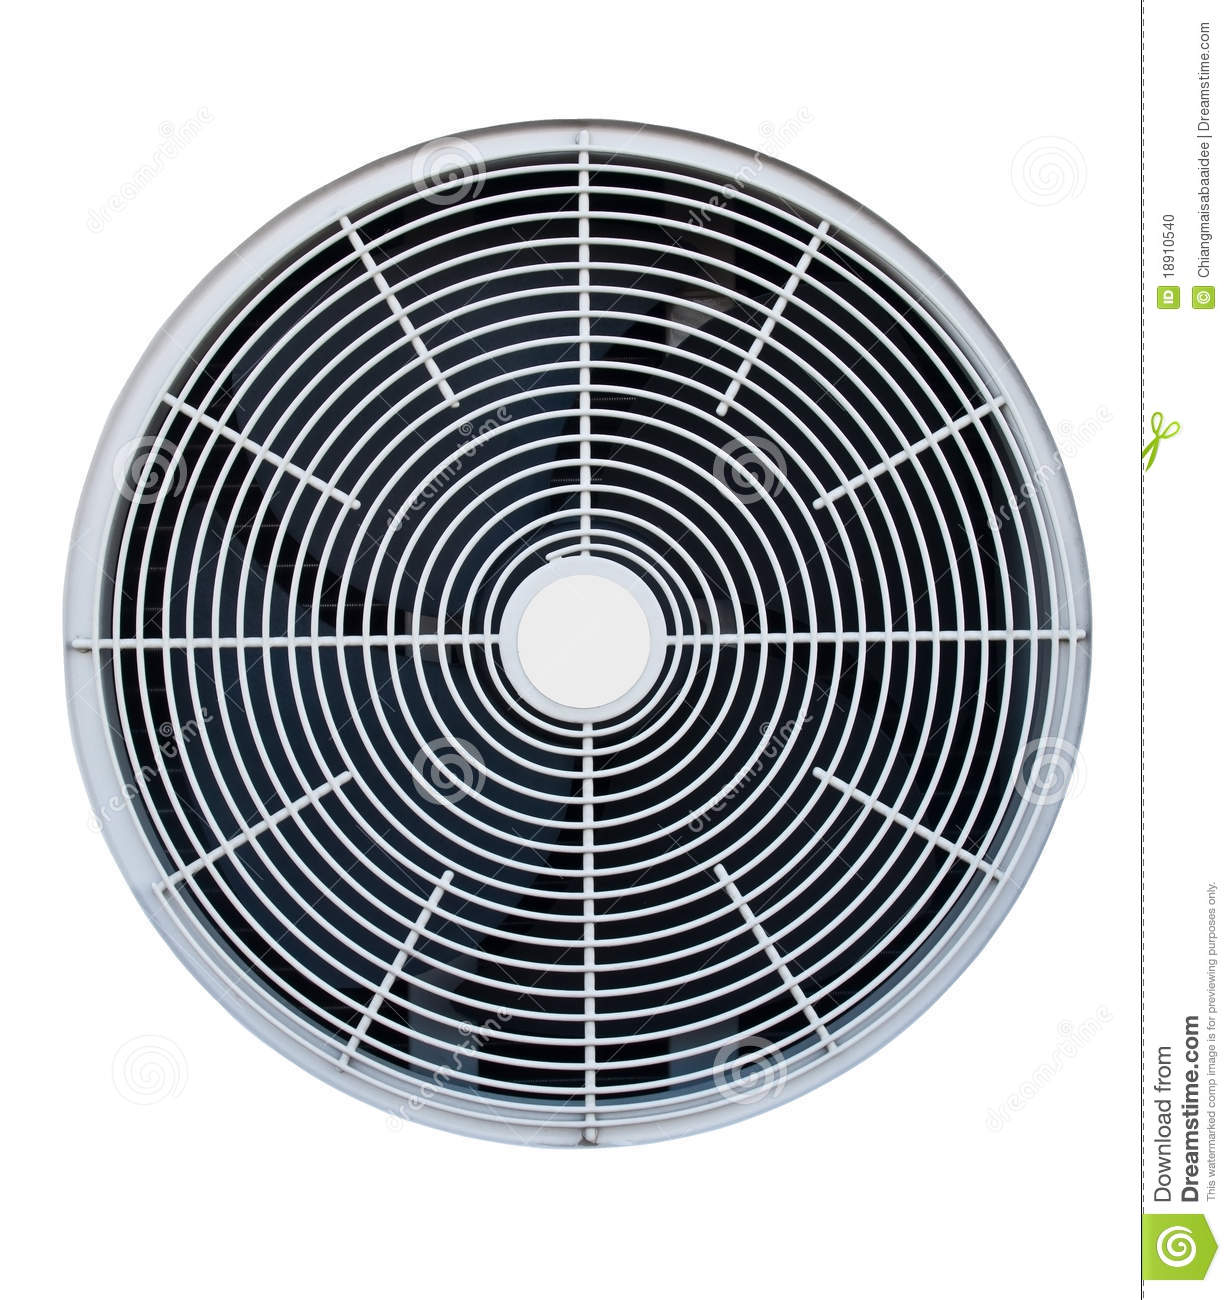 Air Conditioner Fan Isolated Stock Photo Image: 18910540 #82A229